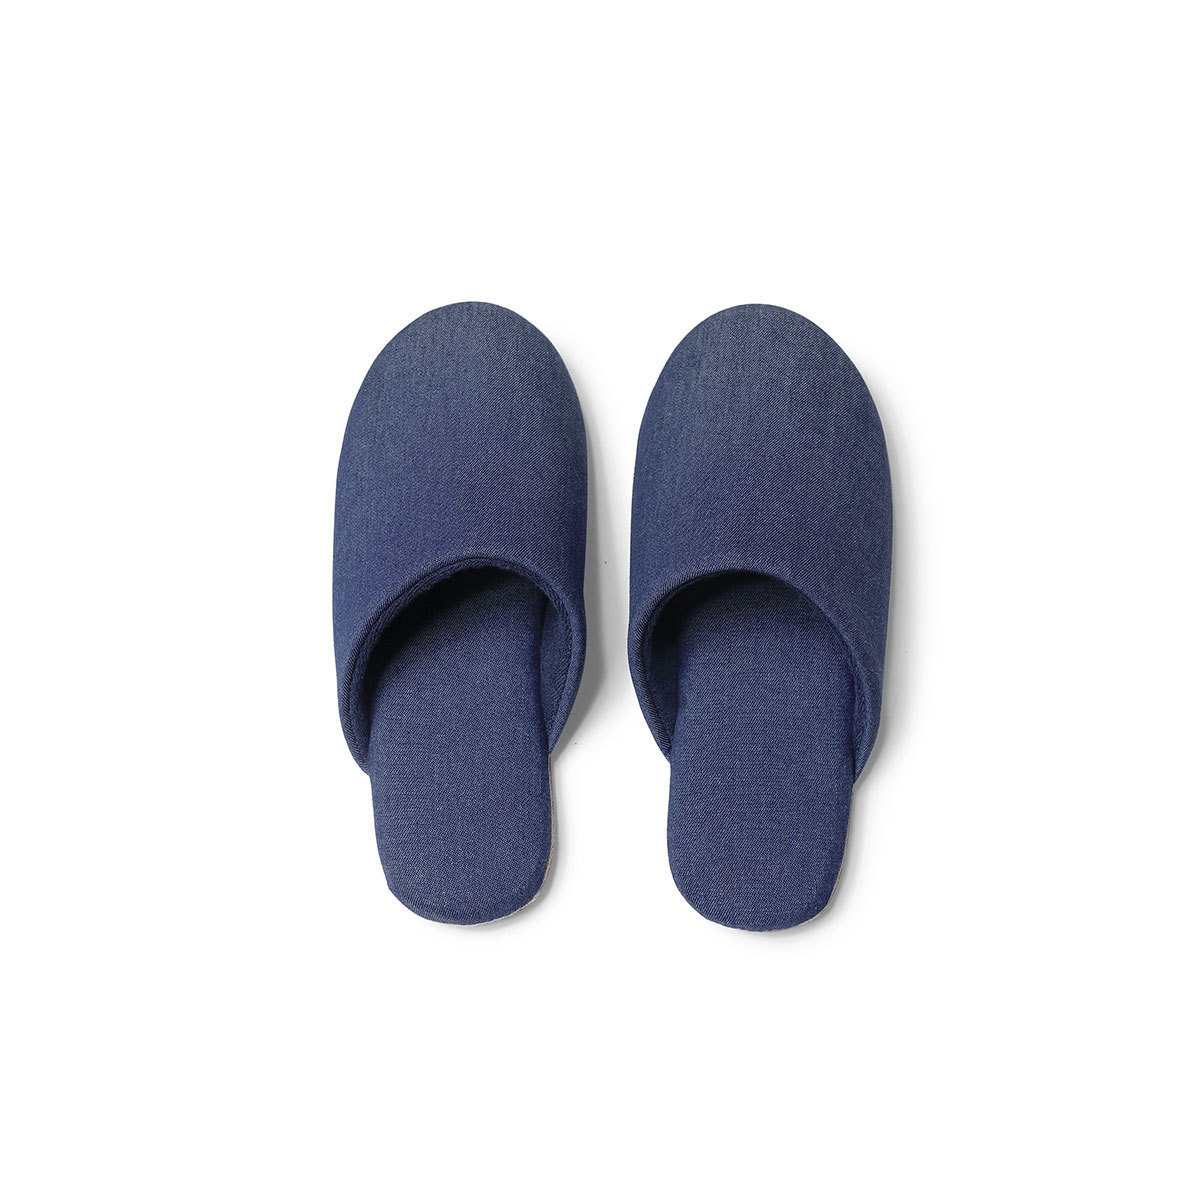 6a1fd5f15 Navy Home Slippers